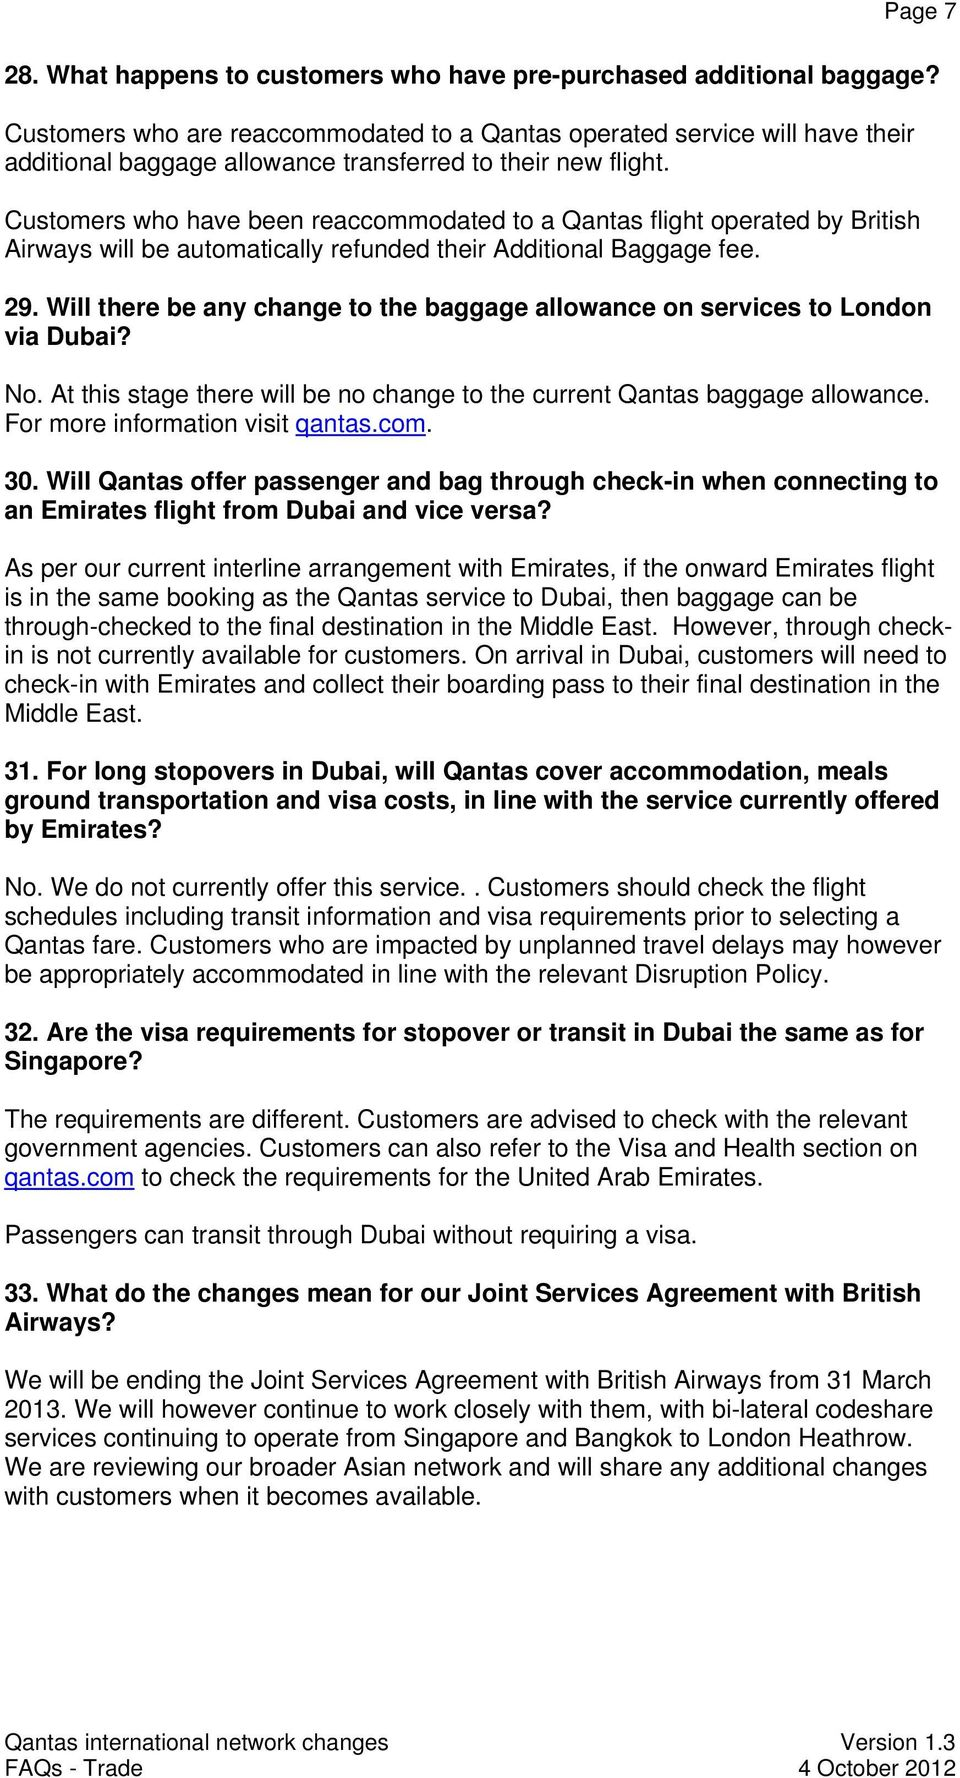 Qantas International Network Changes Frequently Asked